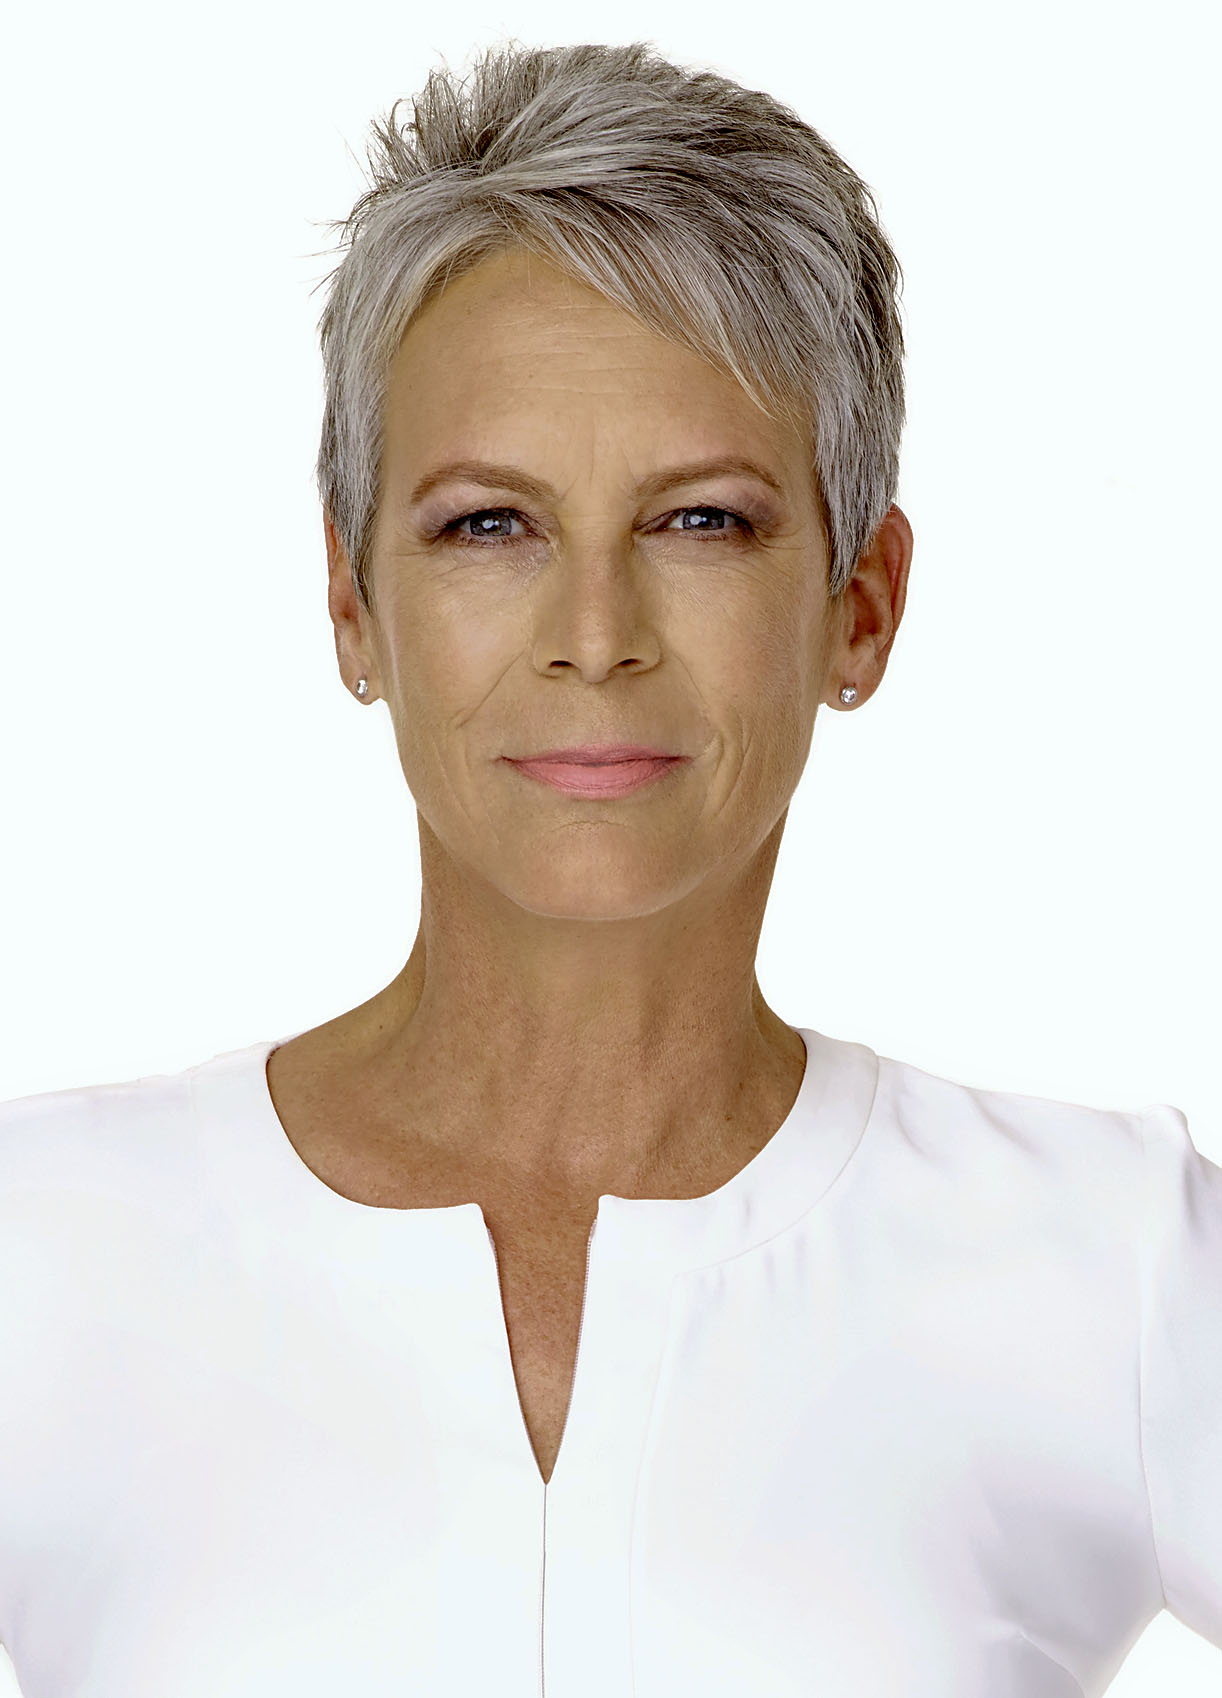 jamie lee curtis - photo #2